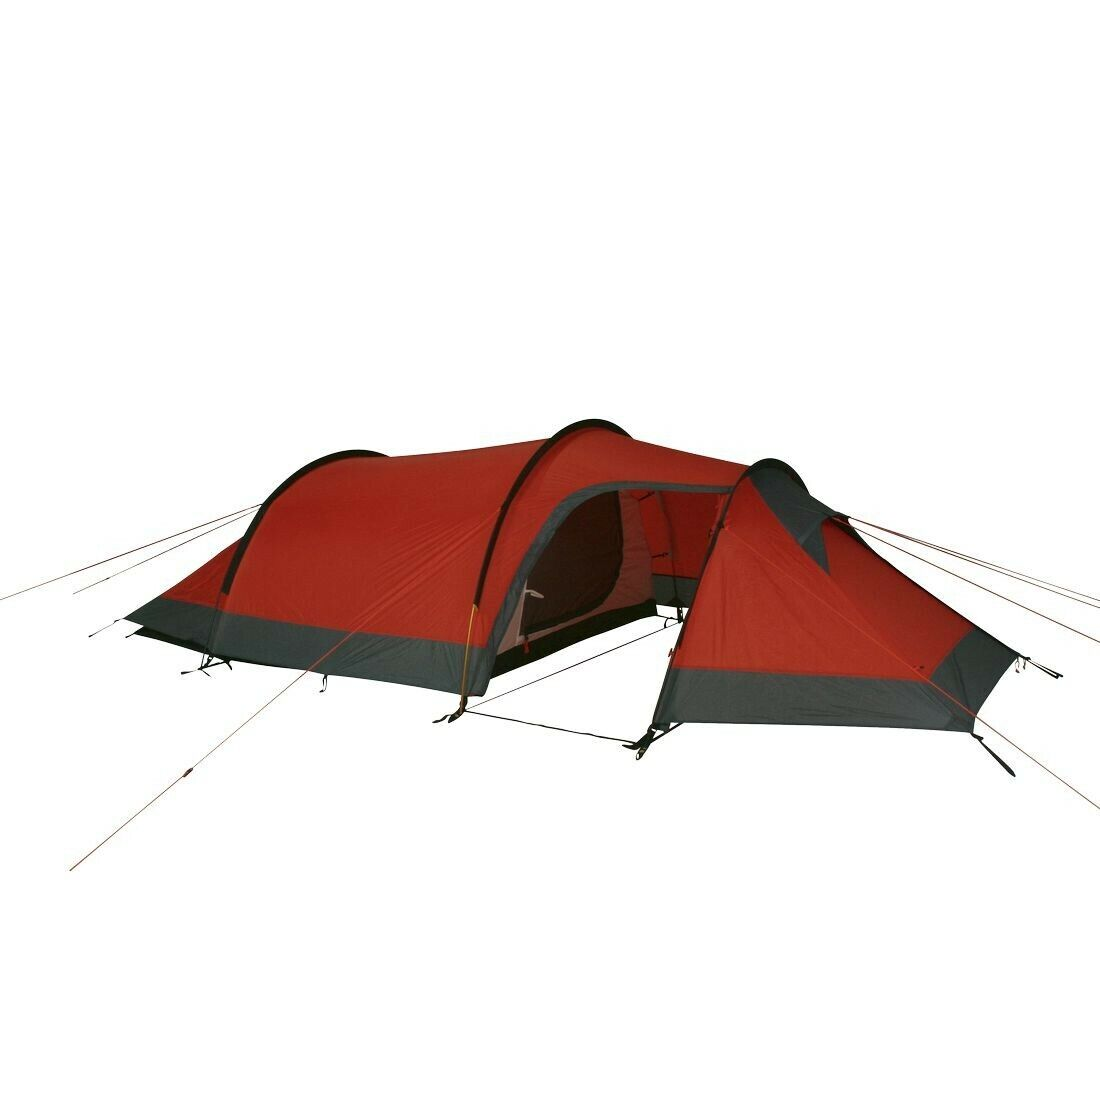 Silicone Valley 3 person outdoor trekking tent silicone coating 5000mm